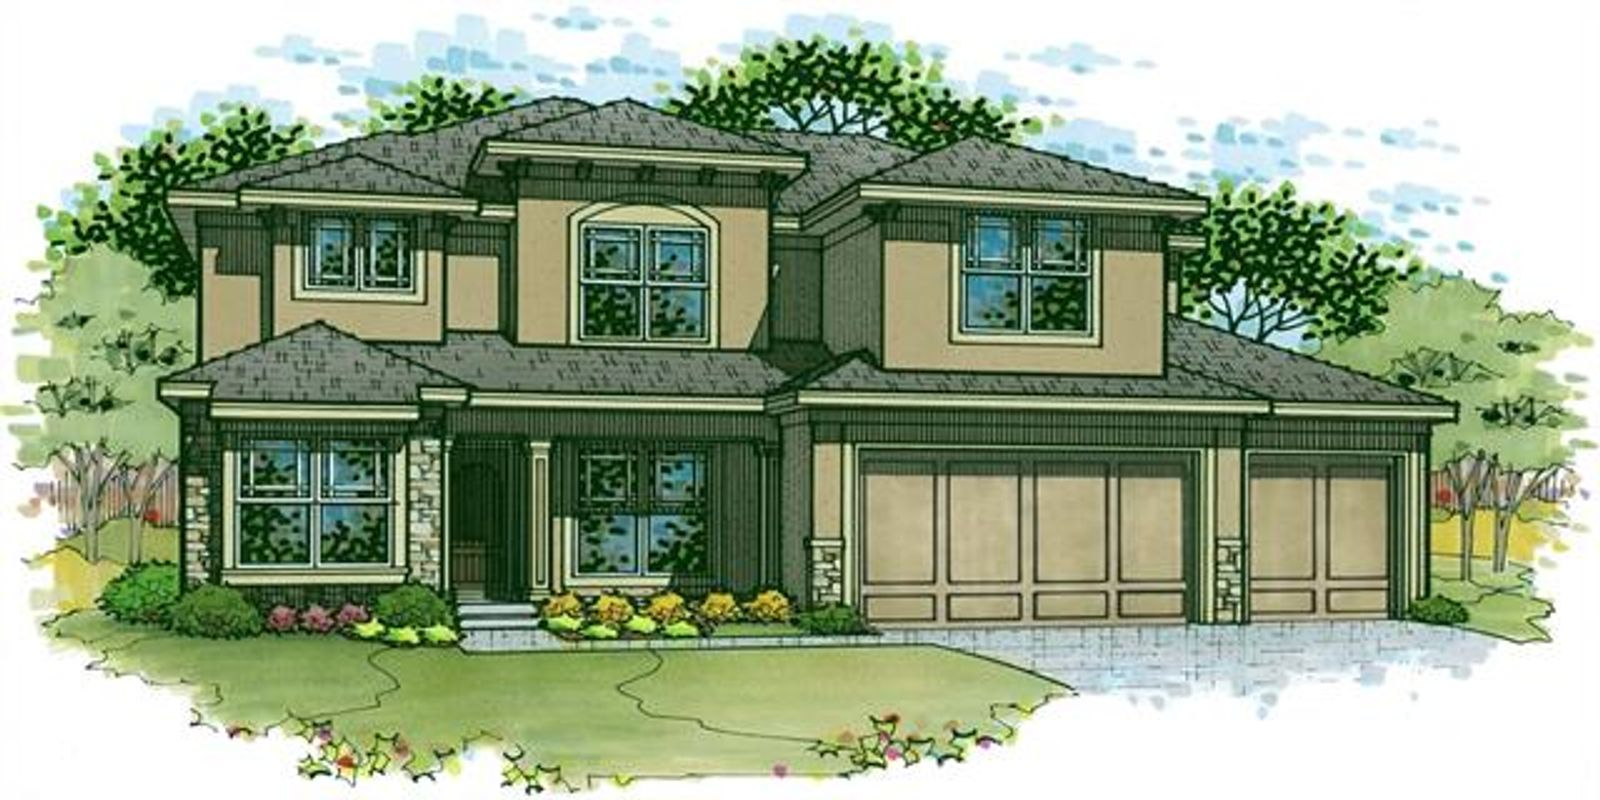 This is Elevation C for the Irving 2 Story which will be built on FVH Lot 218 - 24604 W 126th Ter.